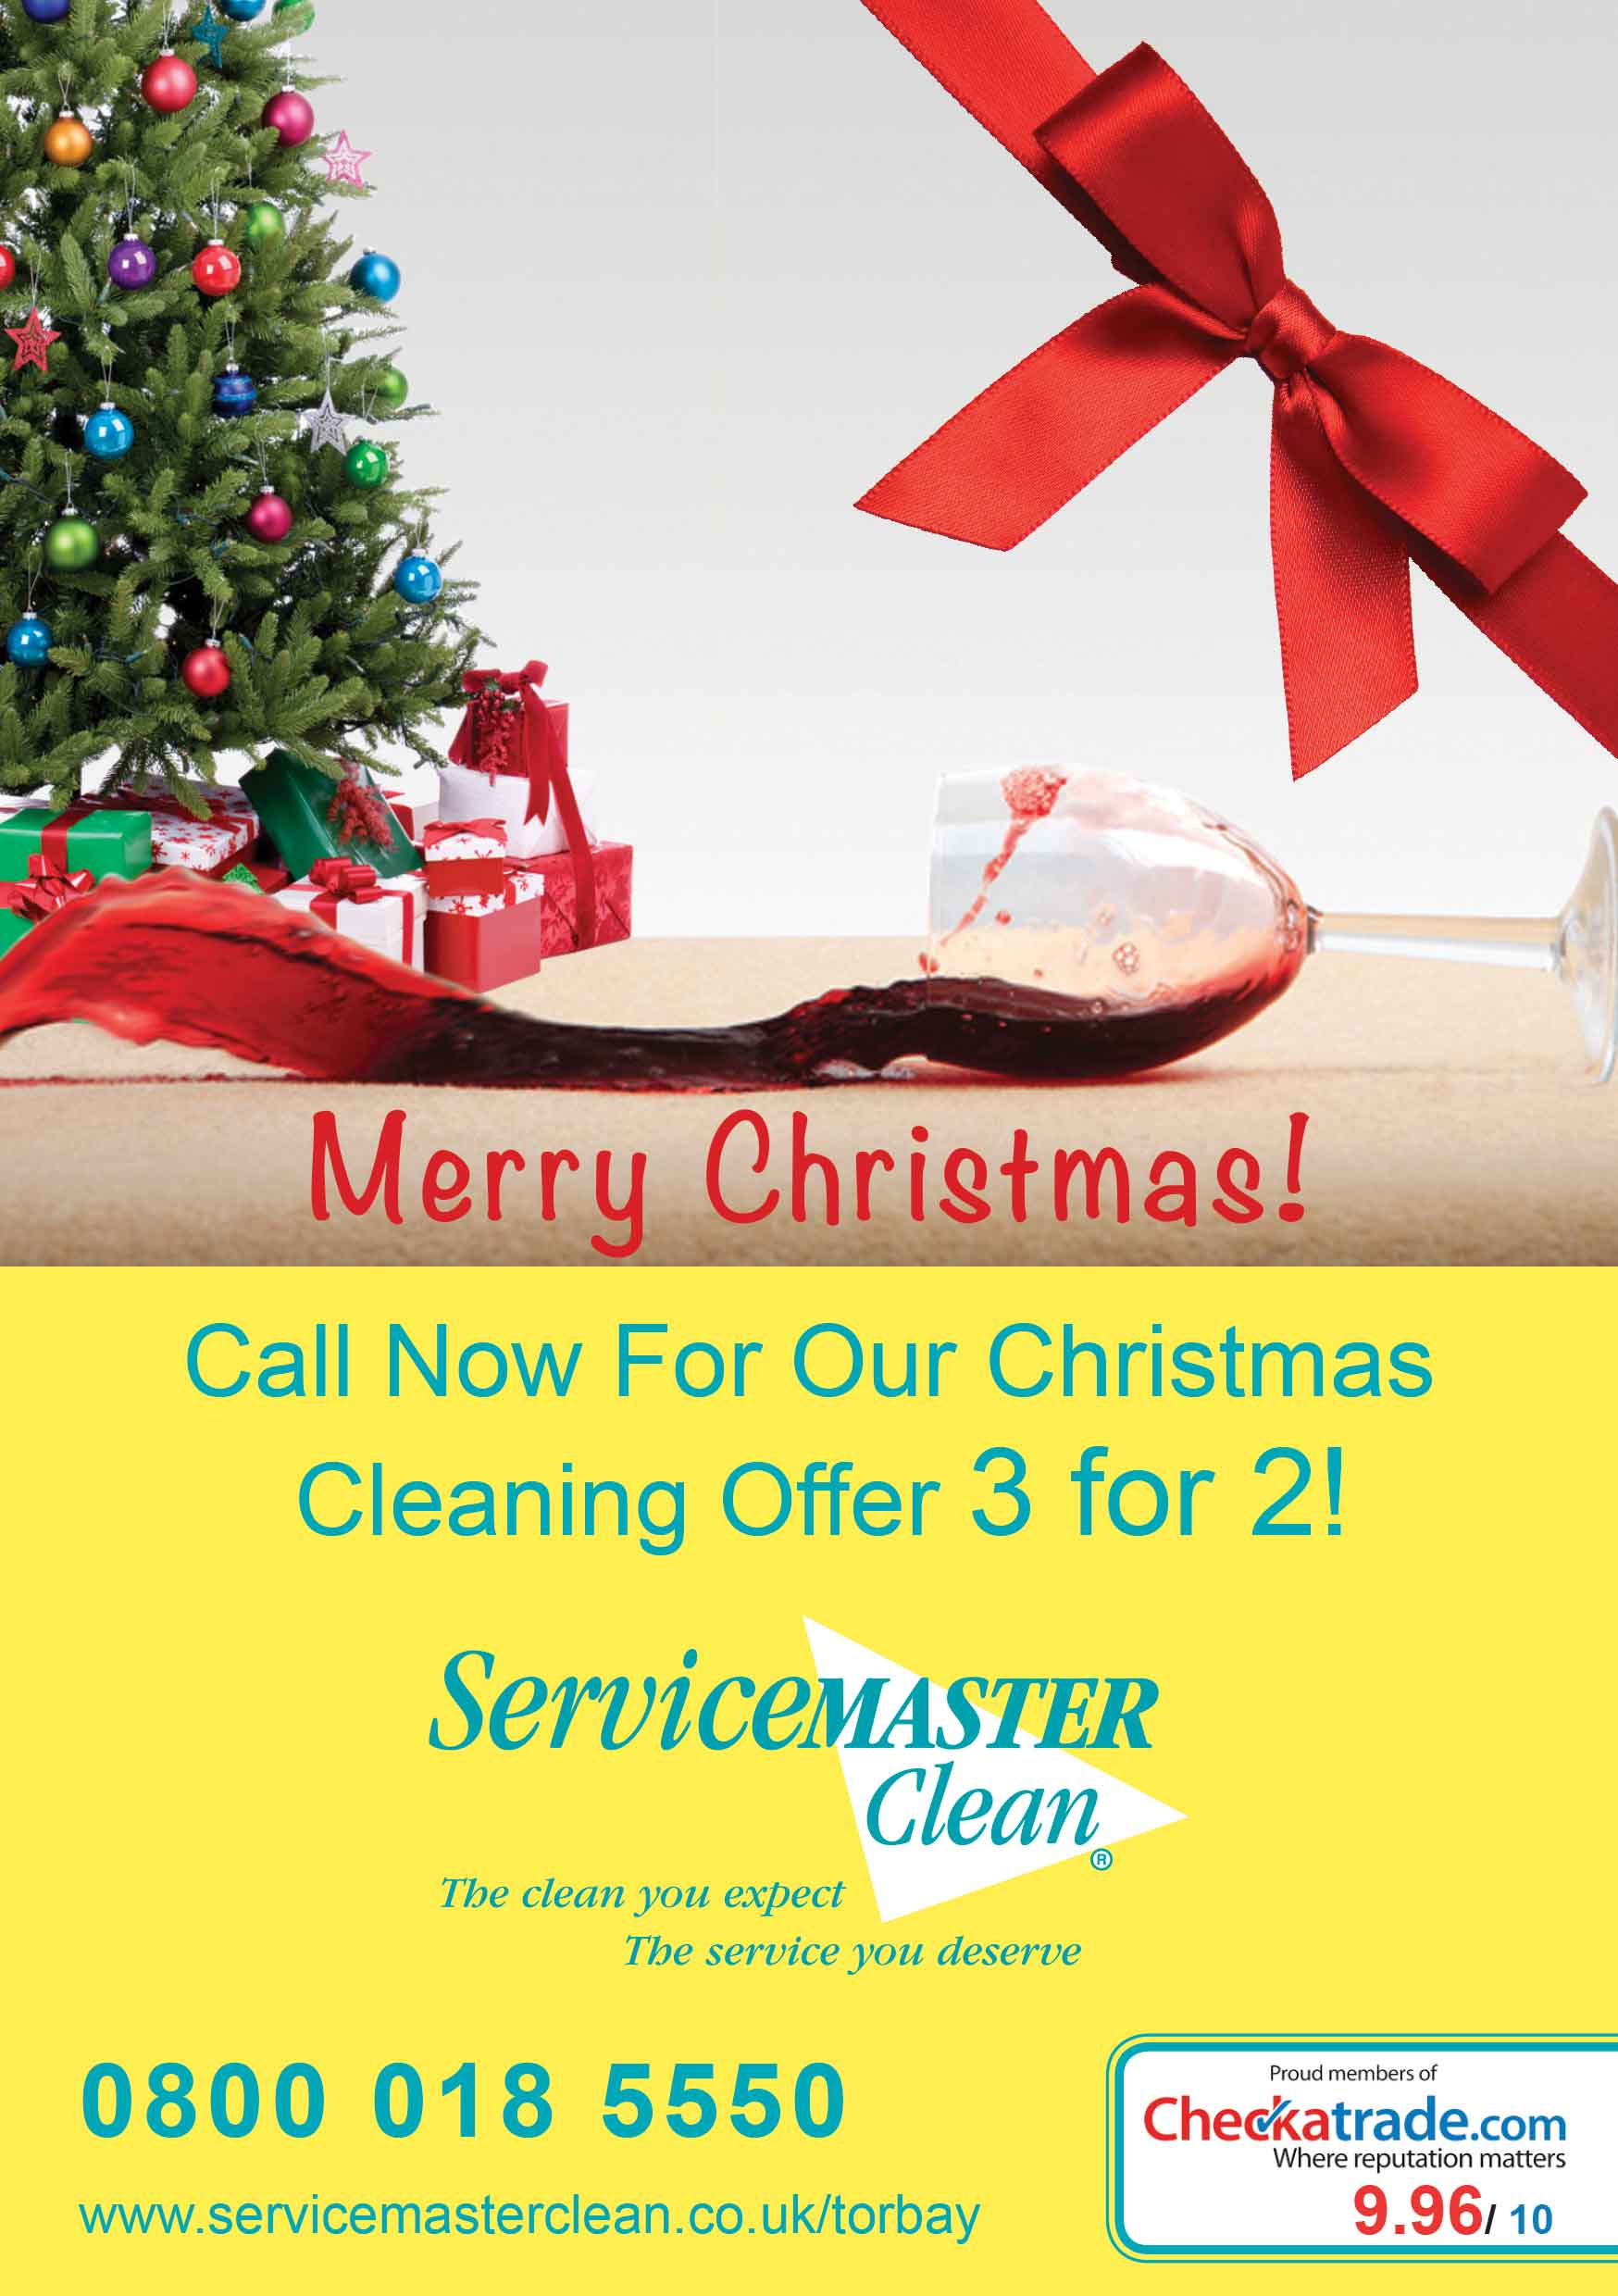 Christmas Carpet Cleaning.Christmas Carpet Cleaning Offer New Year Floor Cleaning Deal